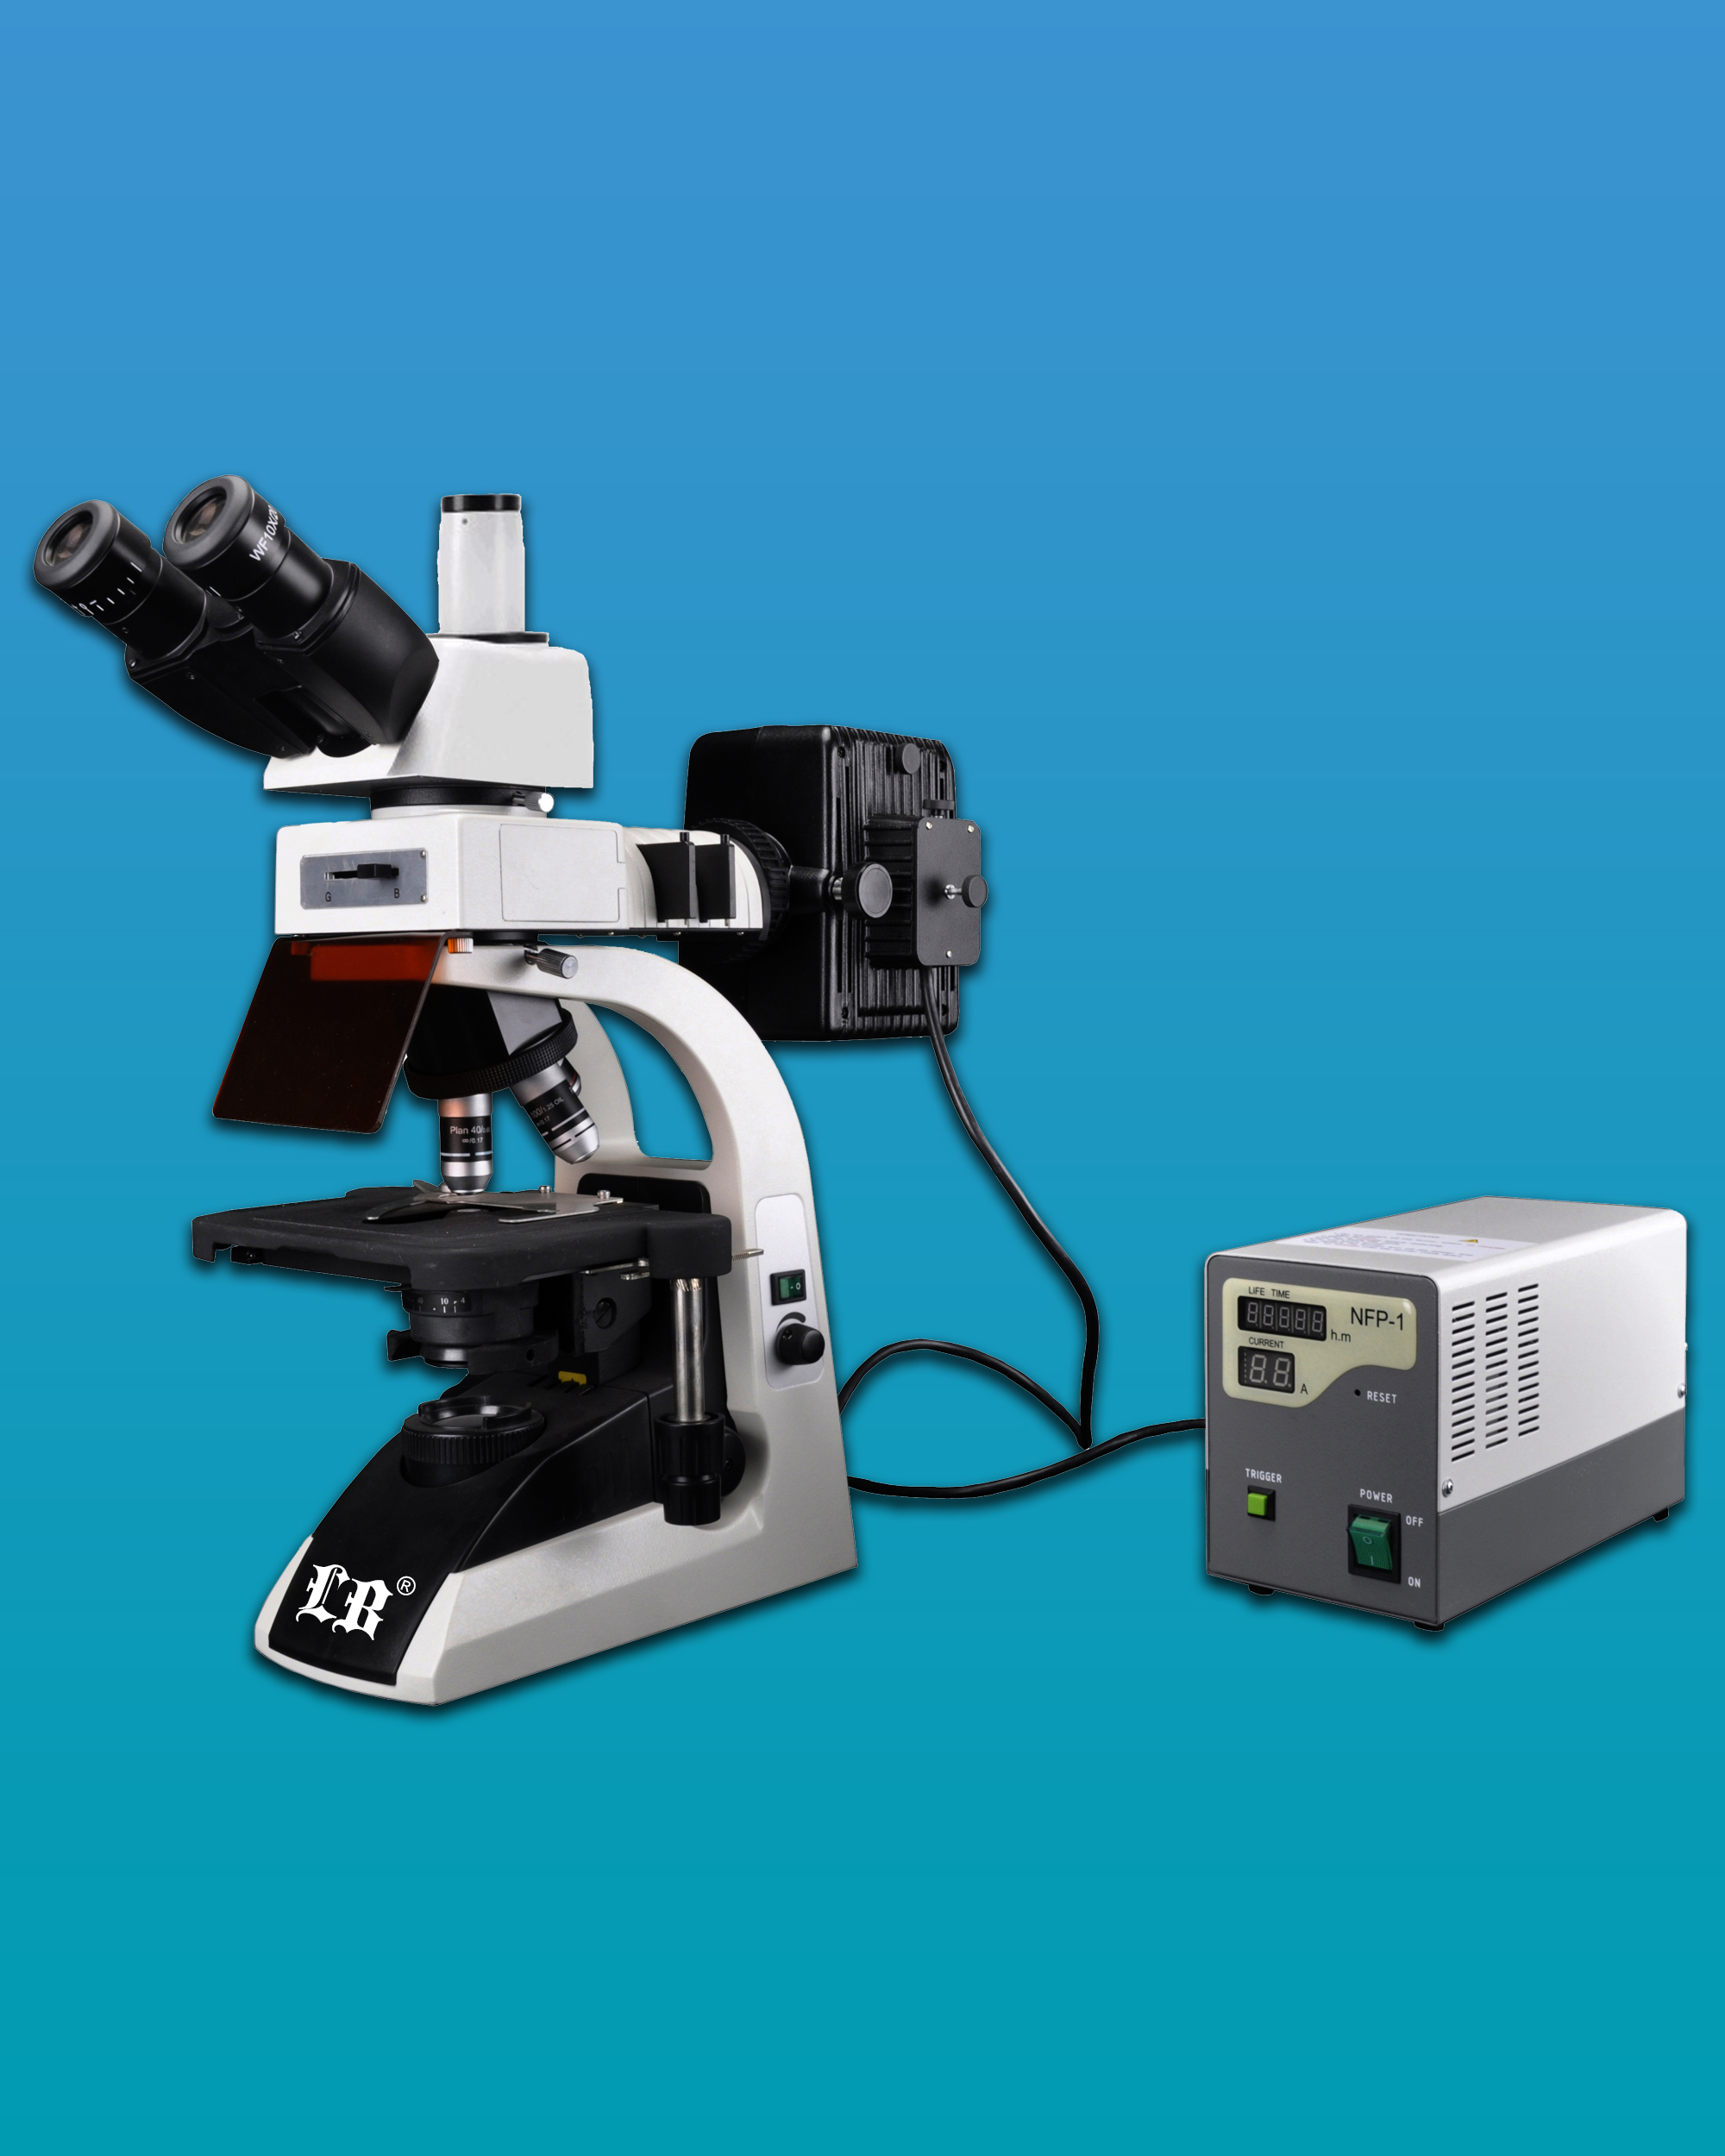 [LB-279] Fluorescent Trinocular Biological Microscope  w/ Infinite Optical System & Extra Wide Field